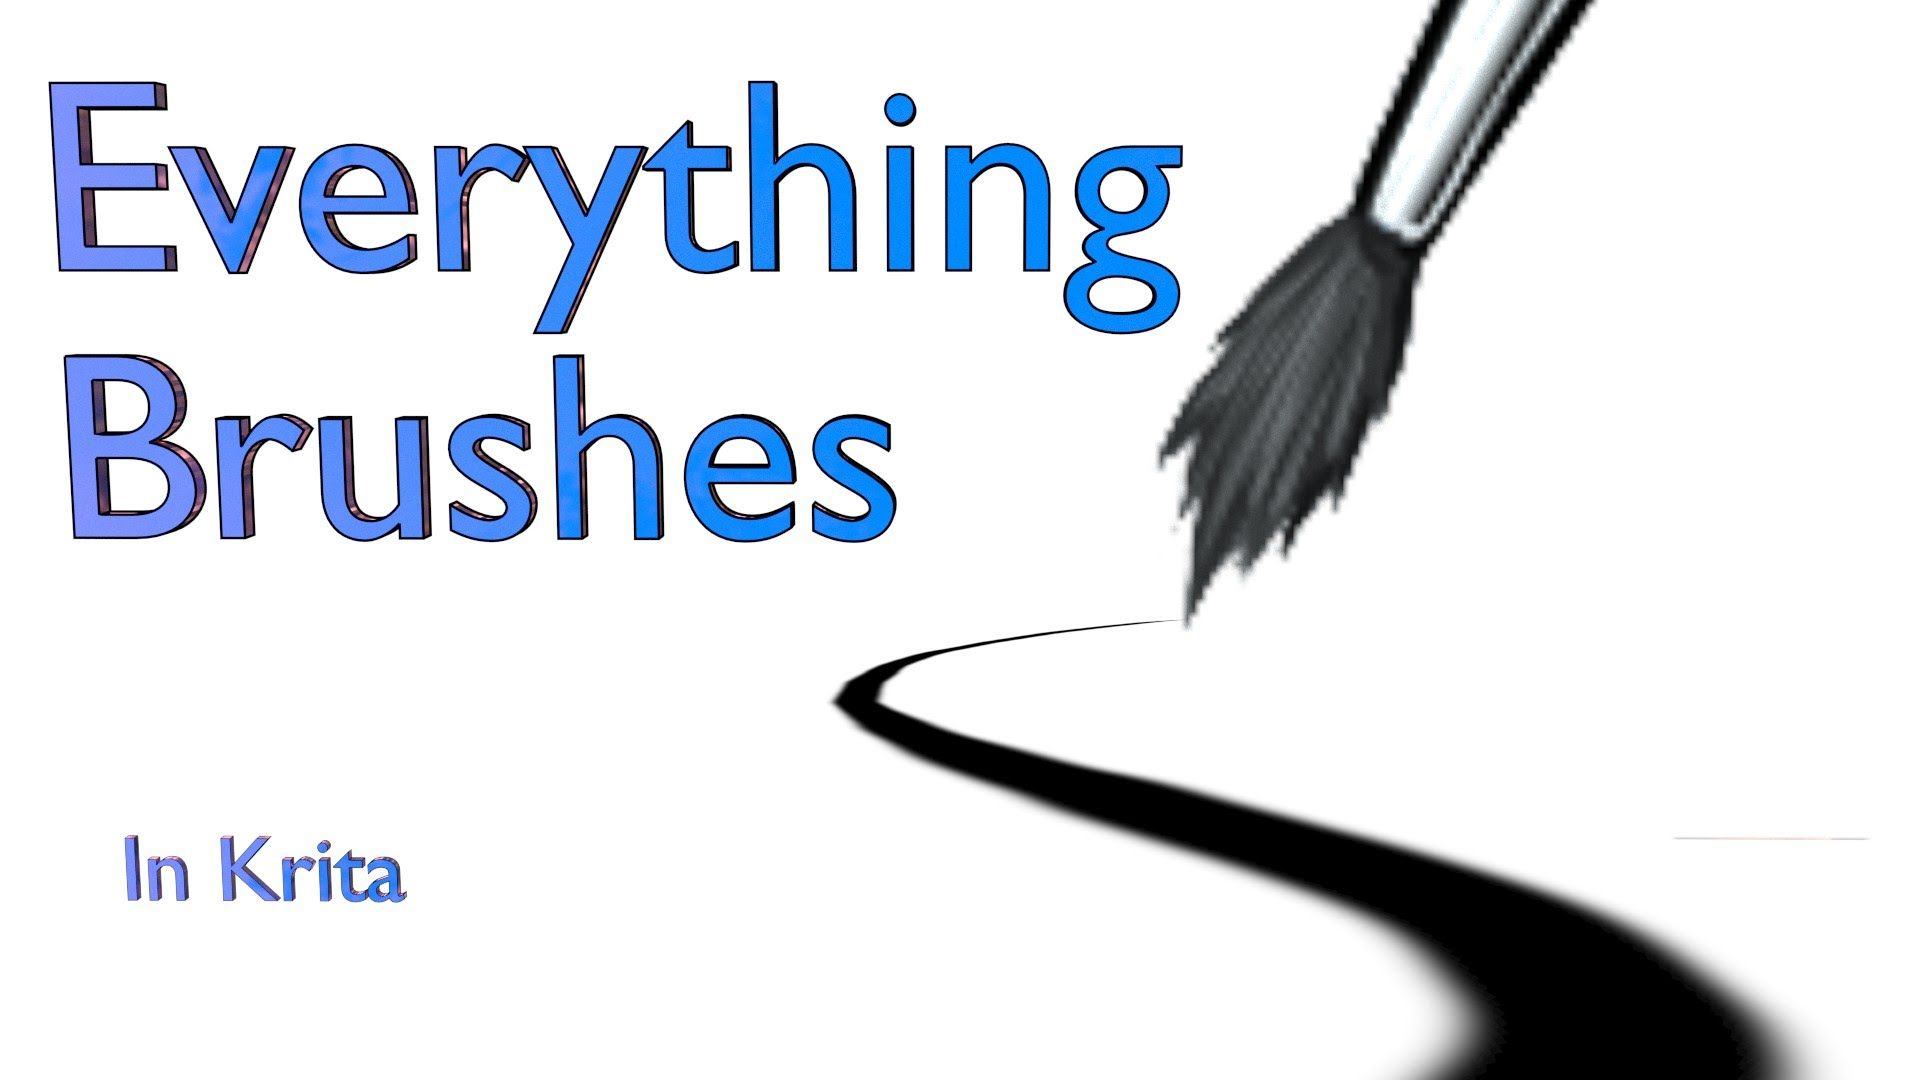 Everything Brushes in Krita  This tutorial covers exactly what the